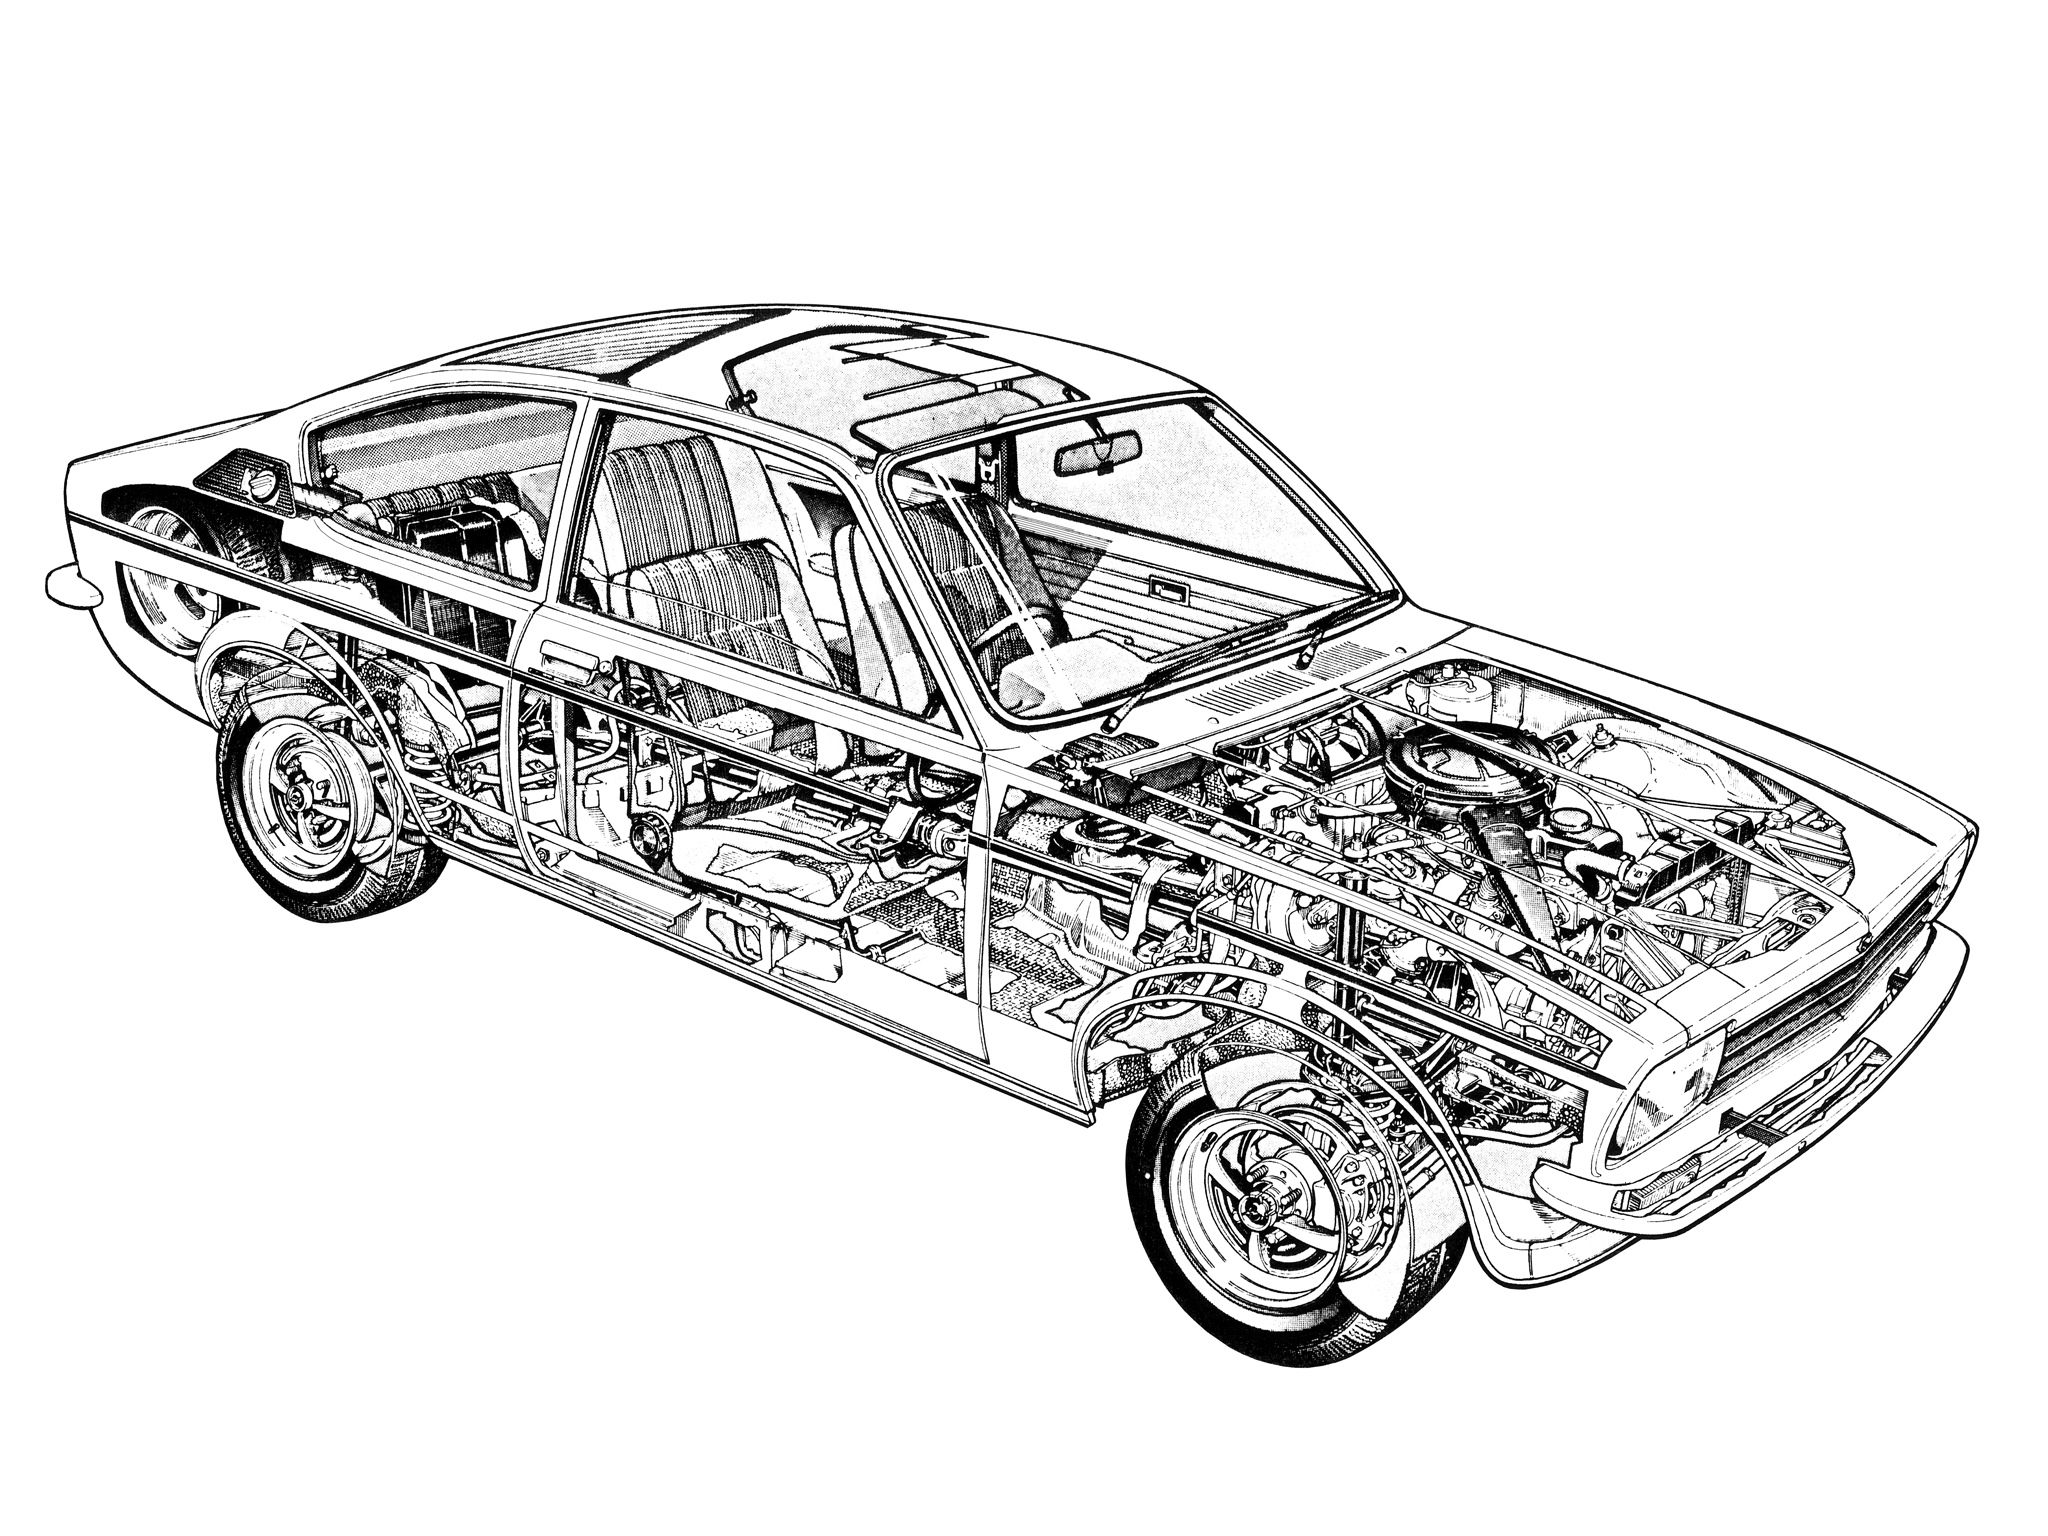 1973 77 Opel Kadett Coupe C Illustrated By Terry Davey Cutaway 2002 Mini Cooper Further Cortina Mk1 Wiring Diagram As Well